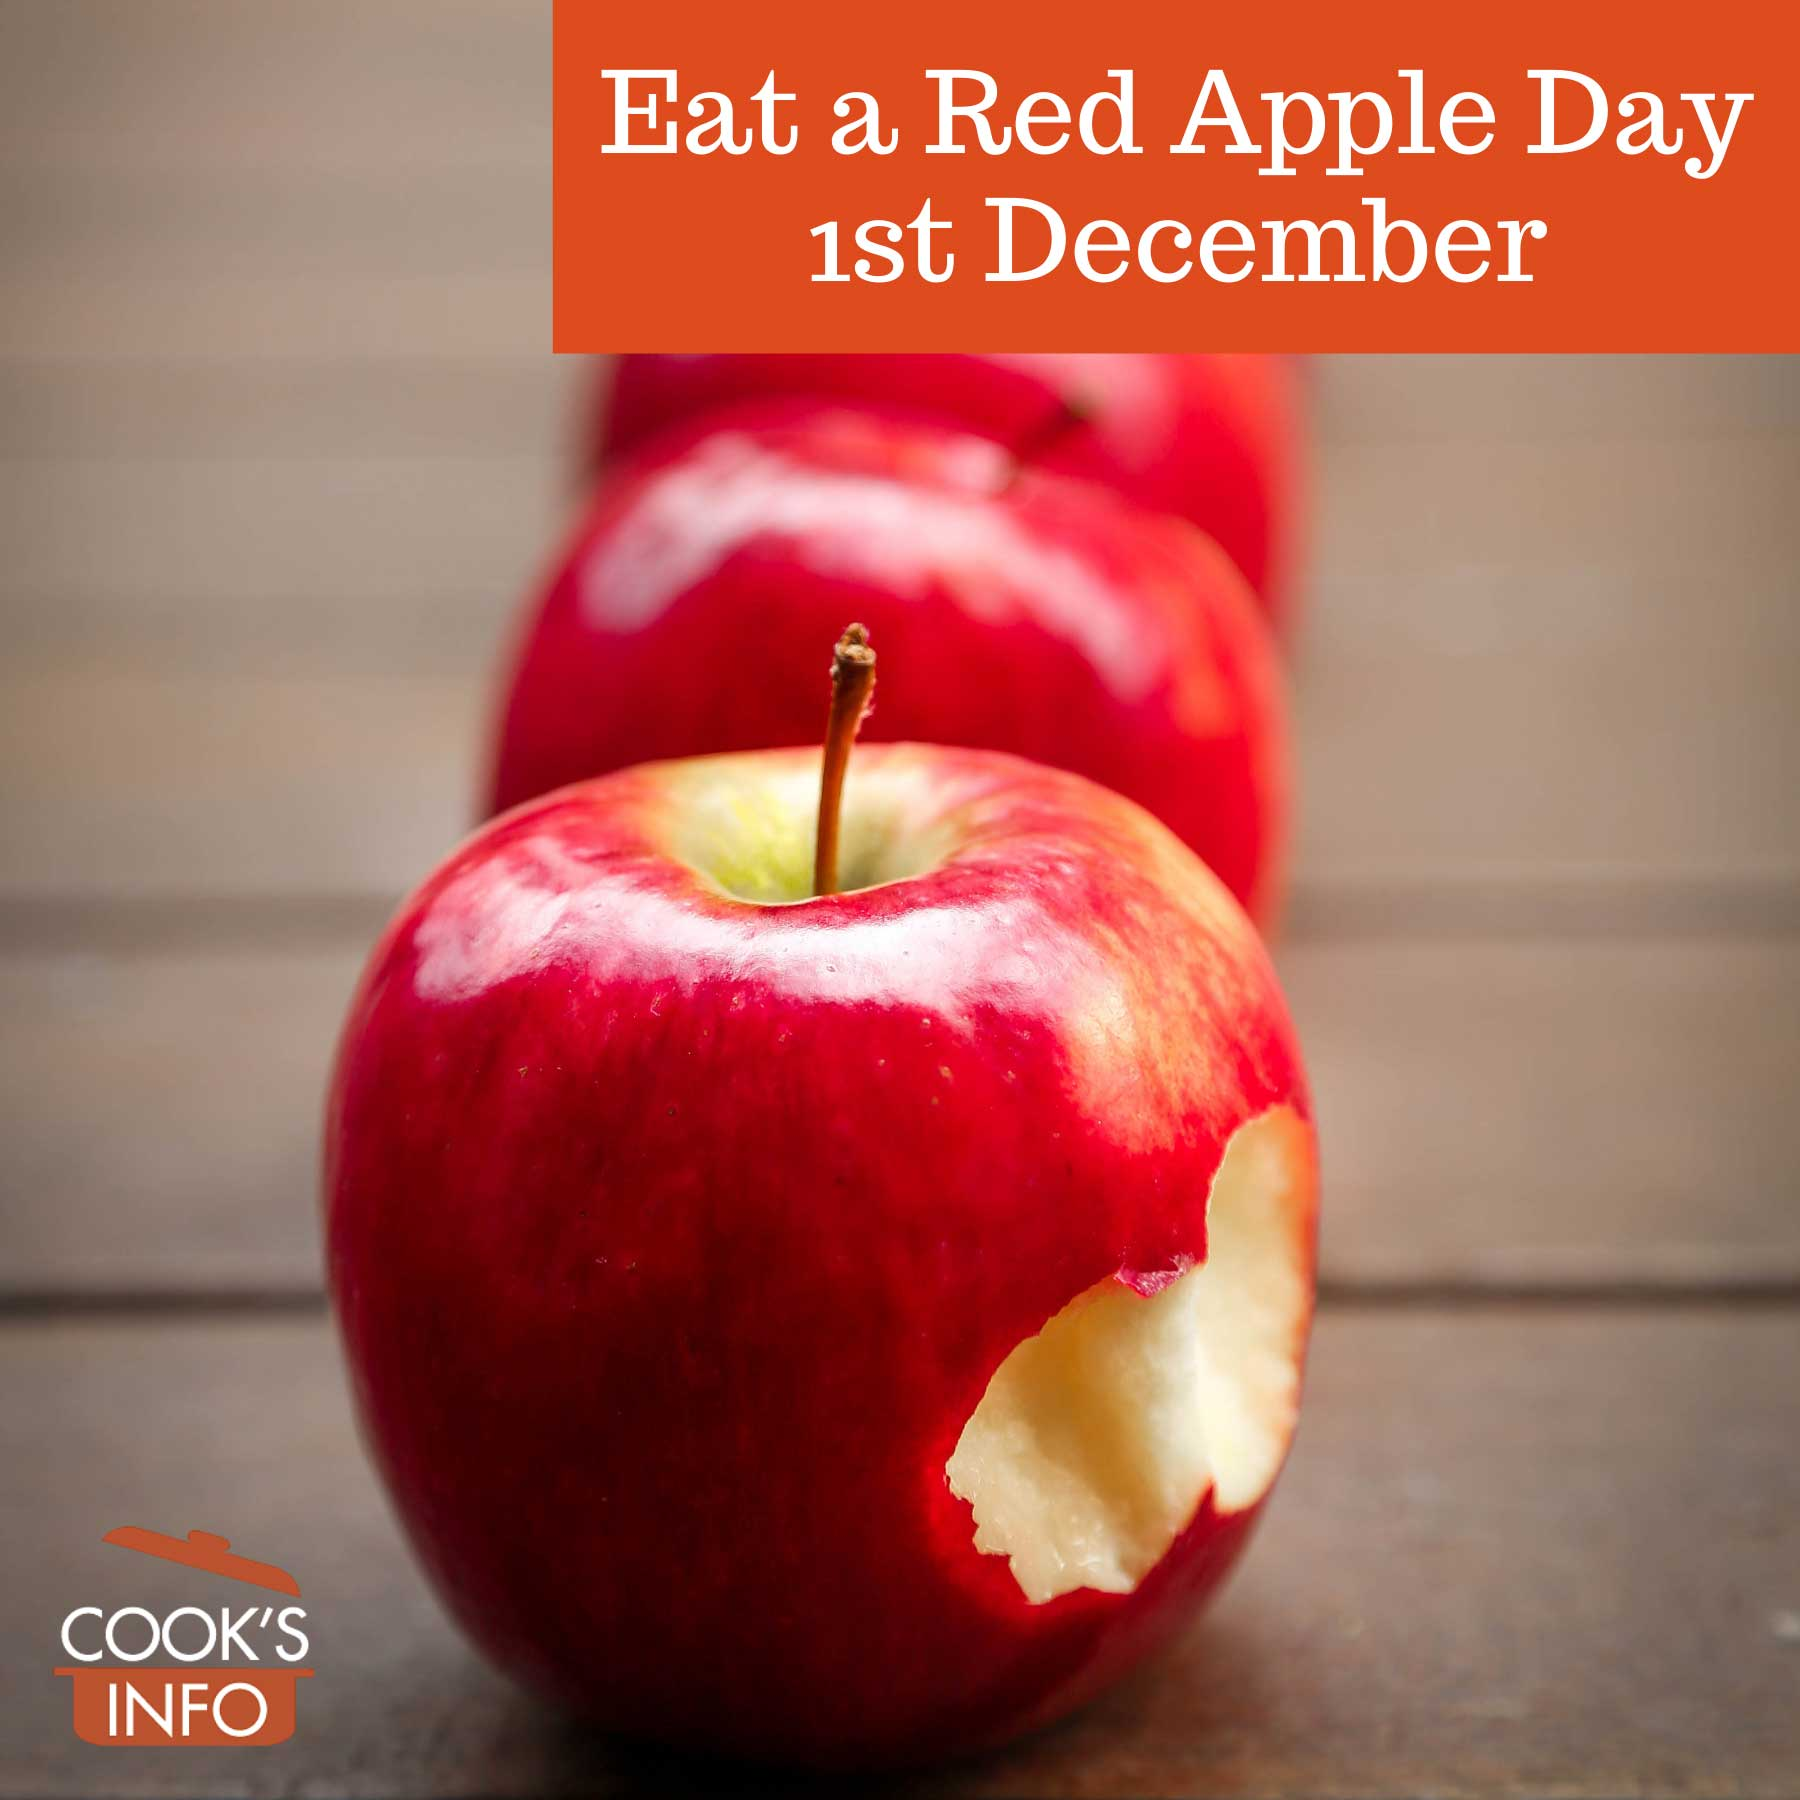 Eat a red apple day, 1st December